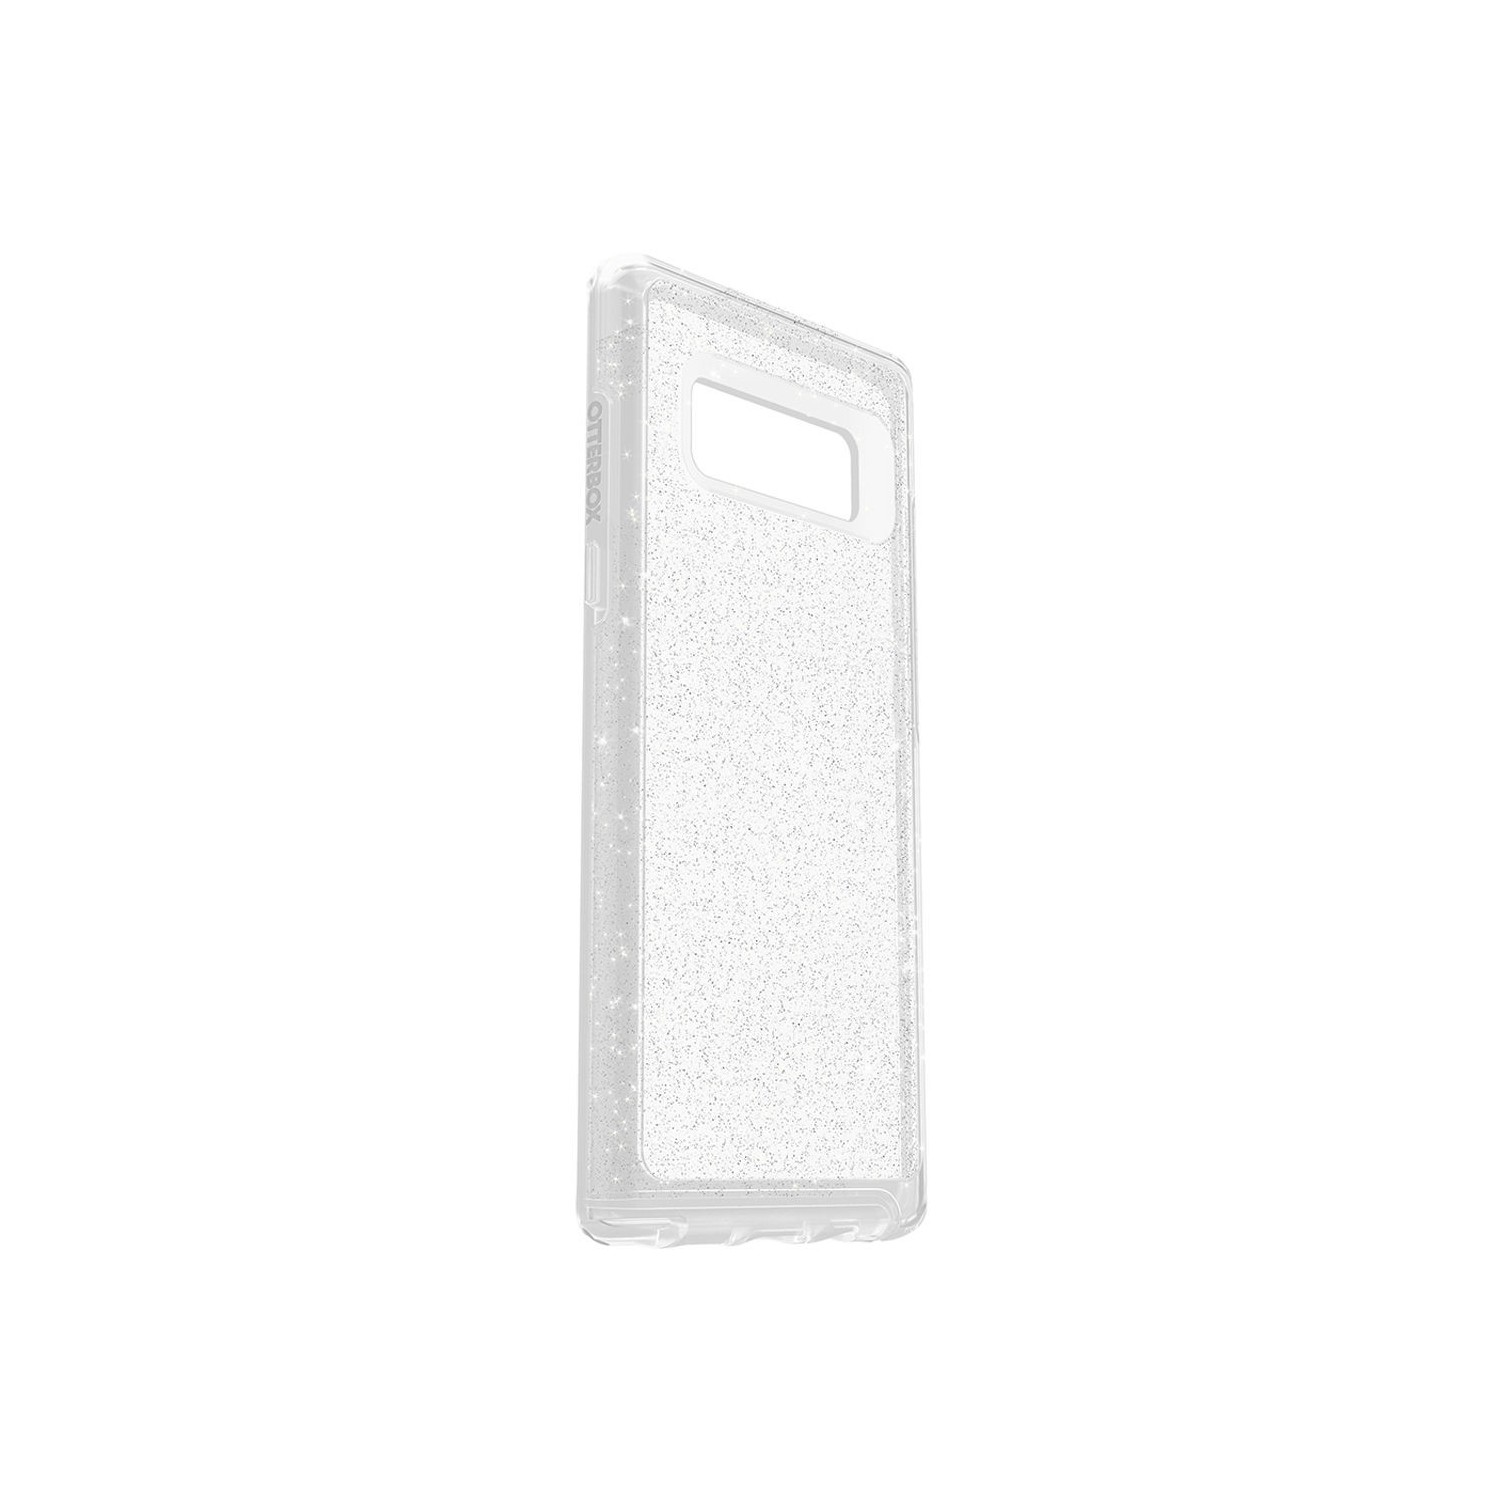 Case - OTTERBOX Symmetry for Samsung NOTE 8 - Stardust